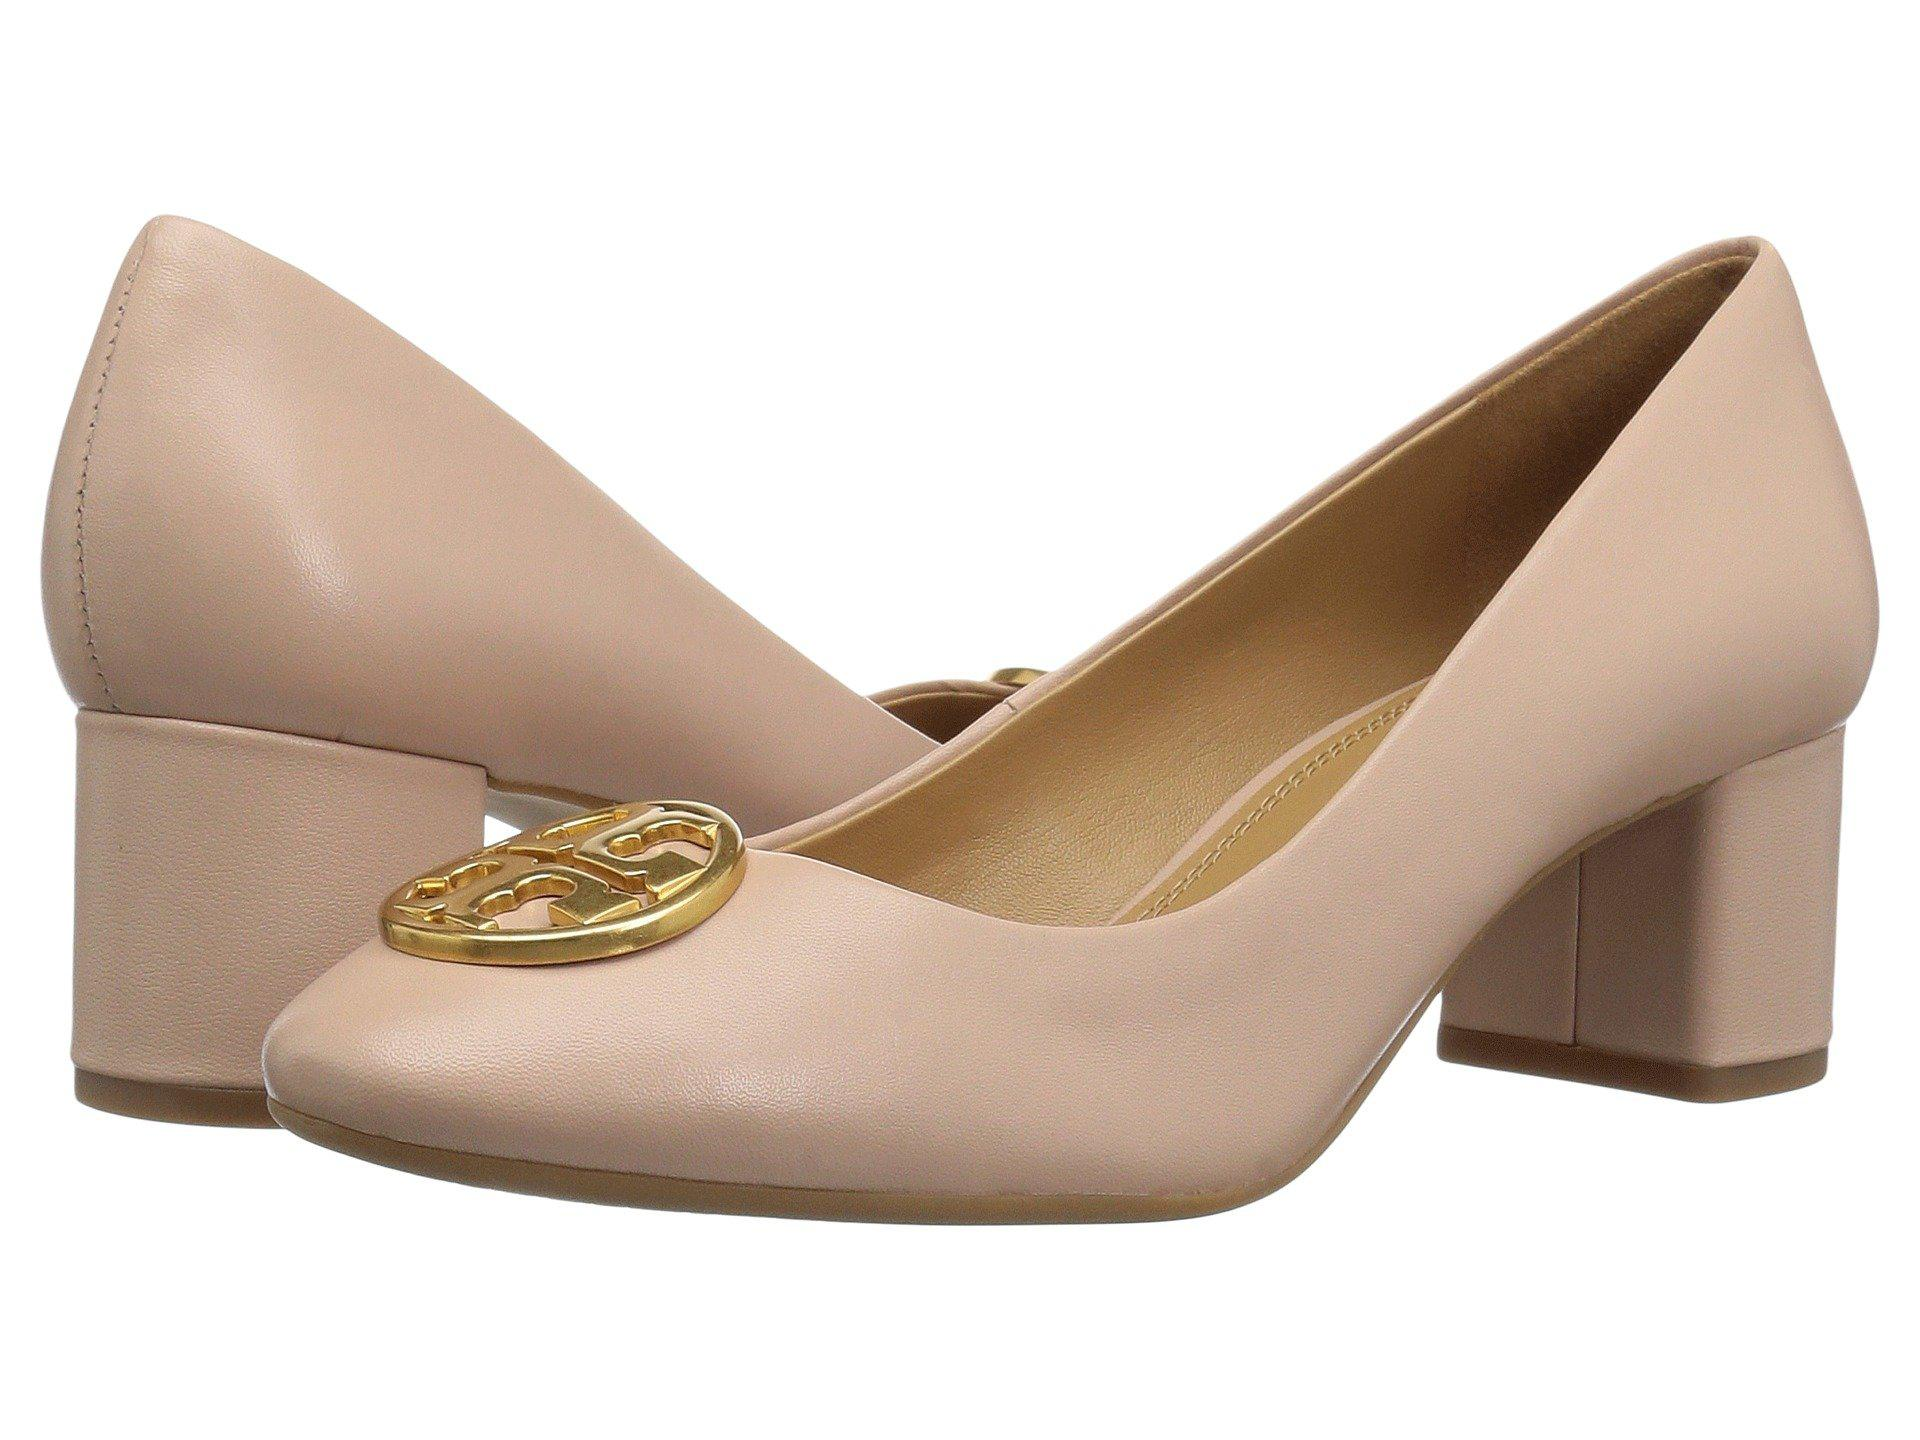 c4d242f009f67 Lyst - Tory Burch Chelsea 50mm Pump (tan) Women s Shoes in Natural ...